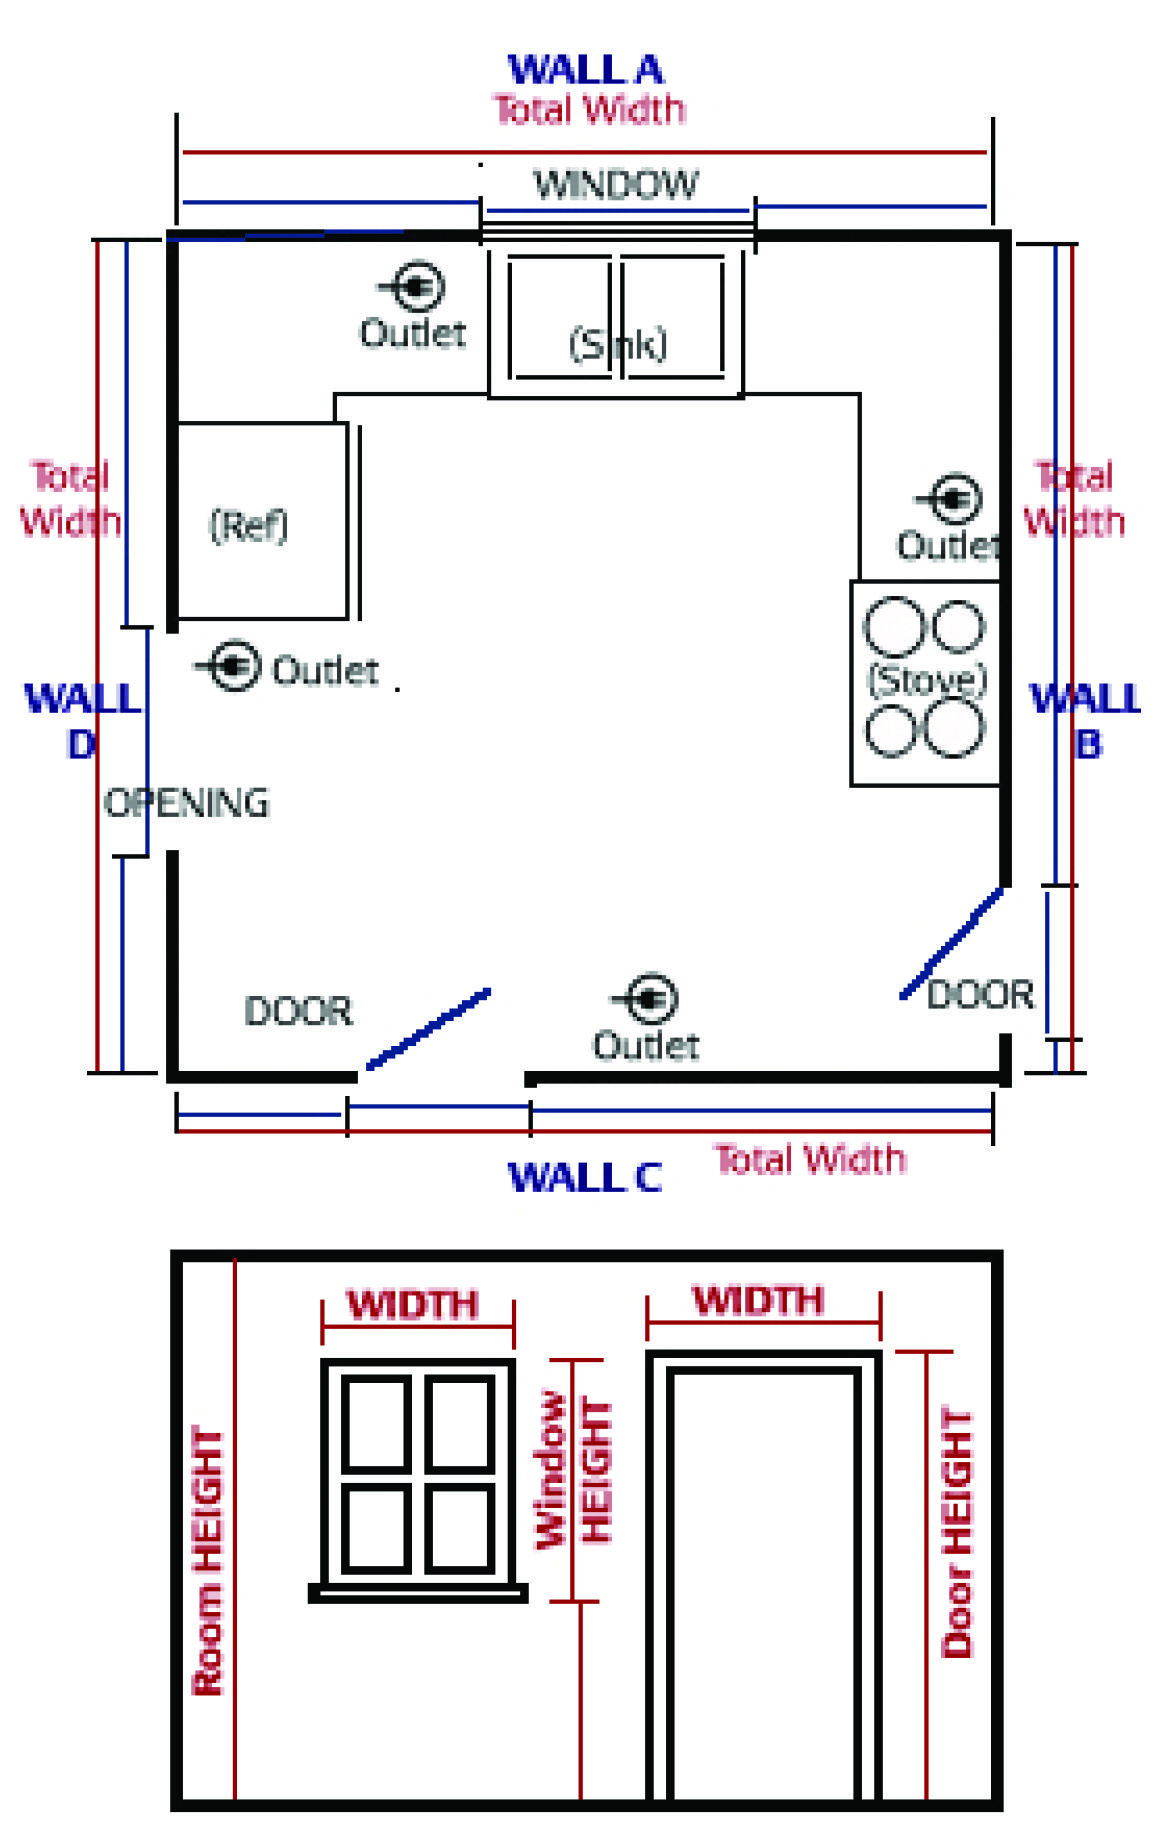 When Planning A Remodel, It Is Important To Know How To